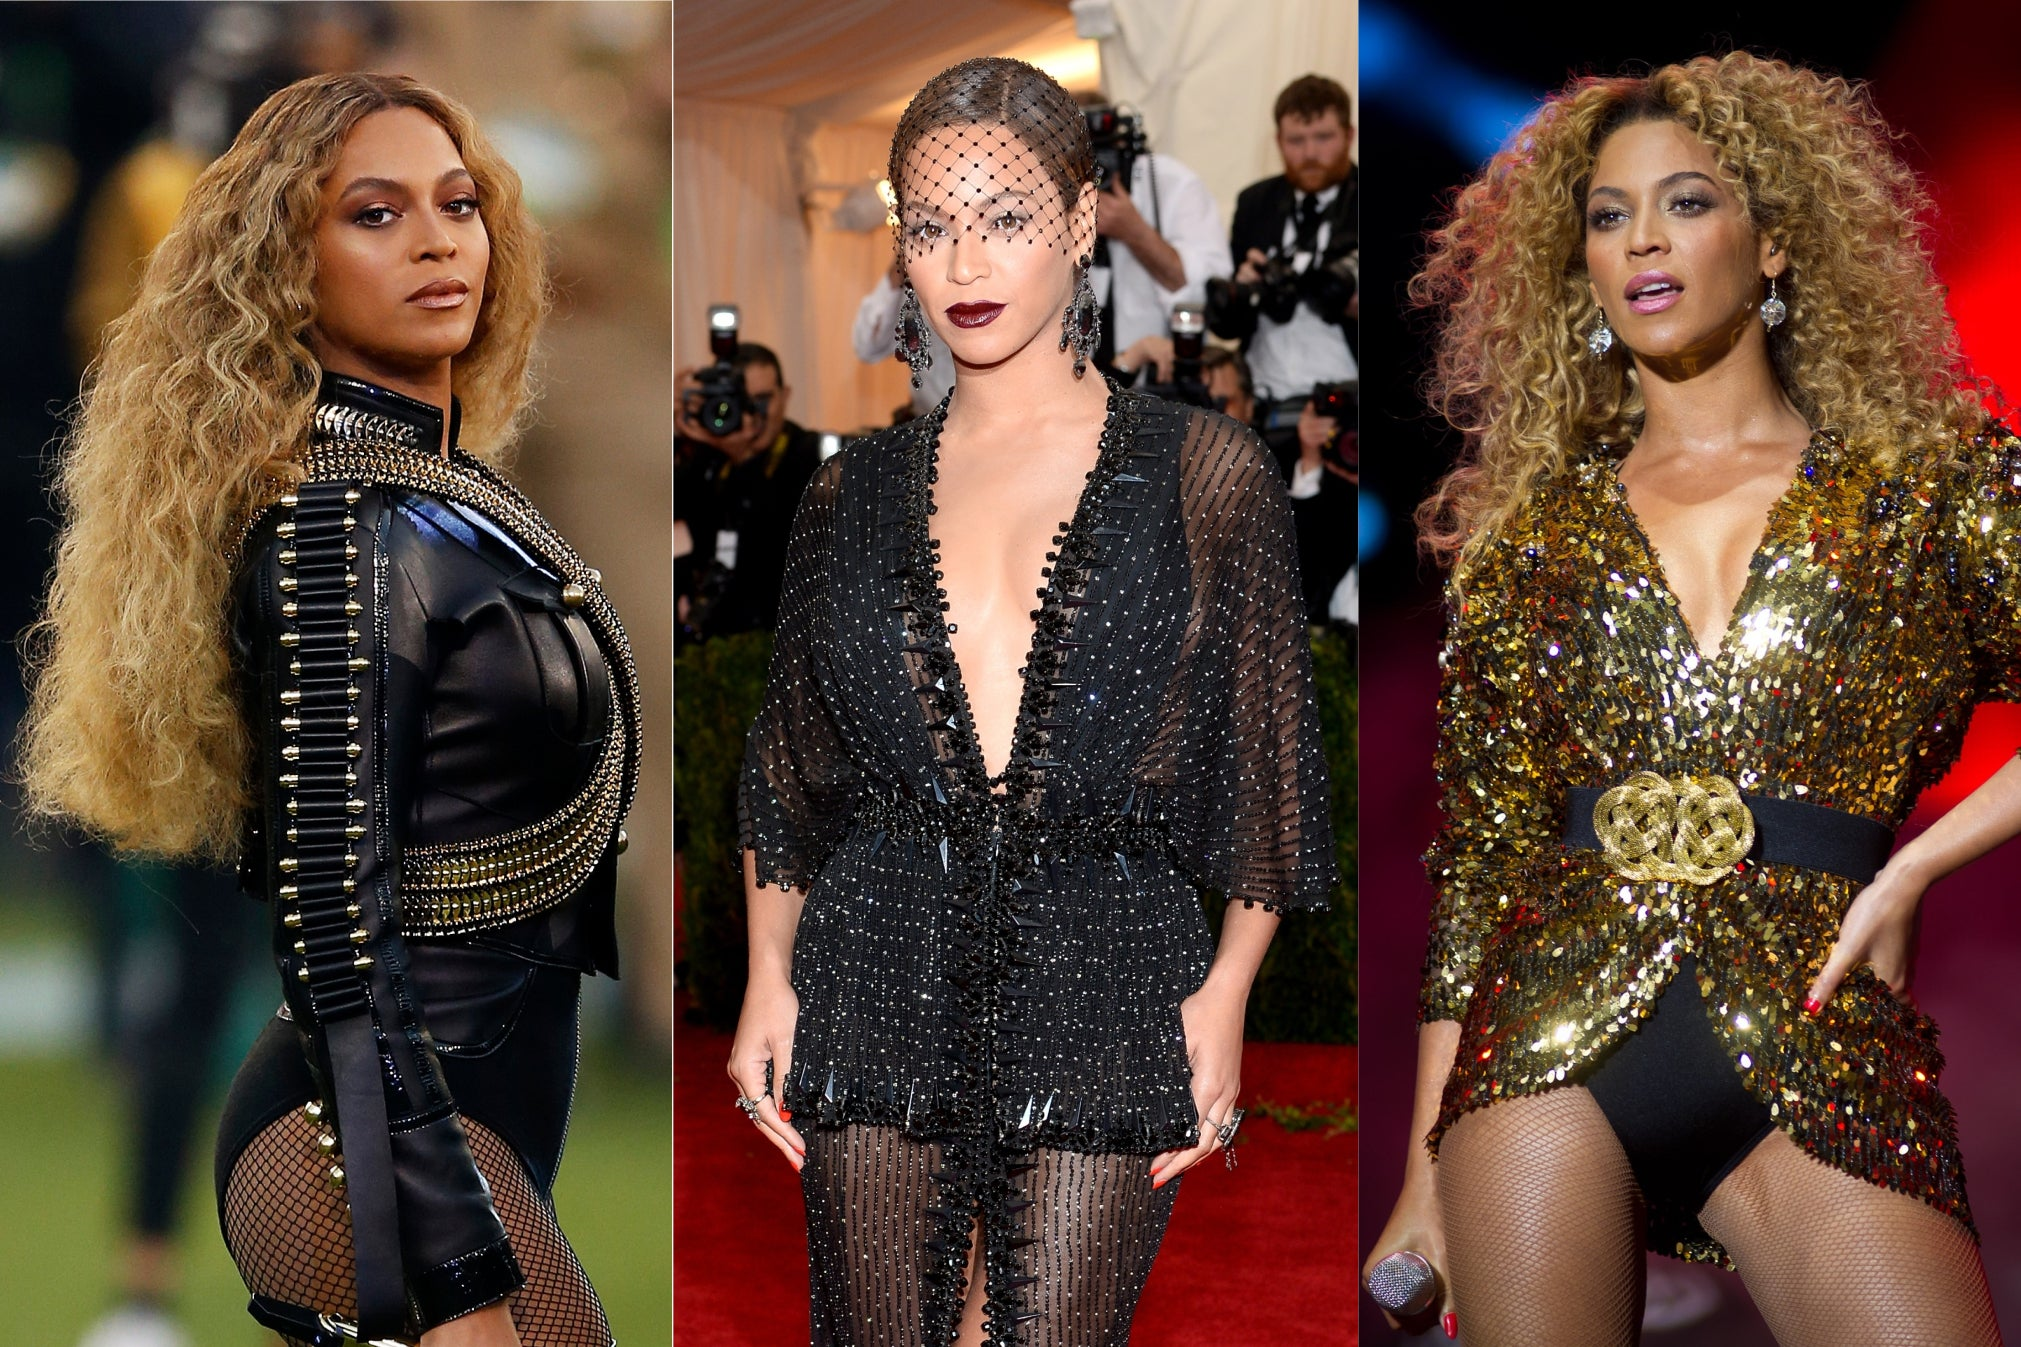 27 of Beyoncé's best fashion moments, from Coachella to the